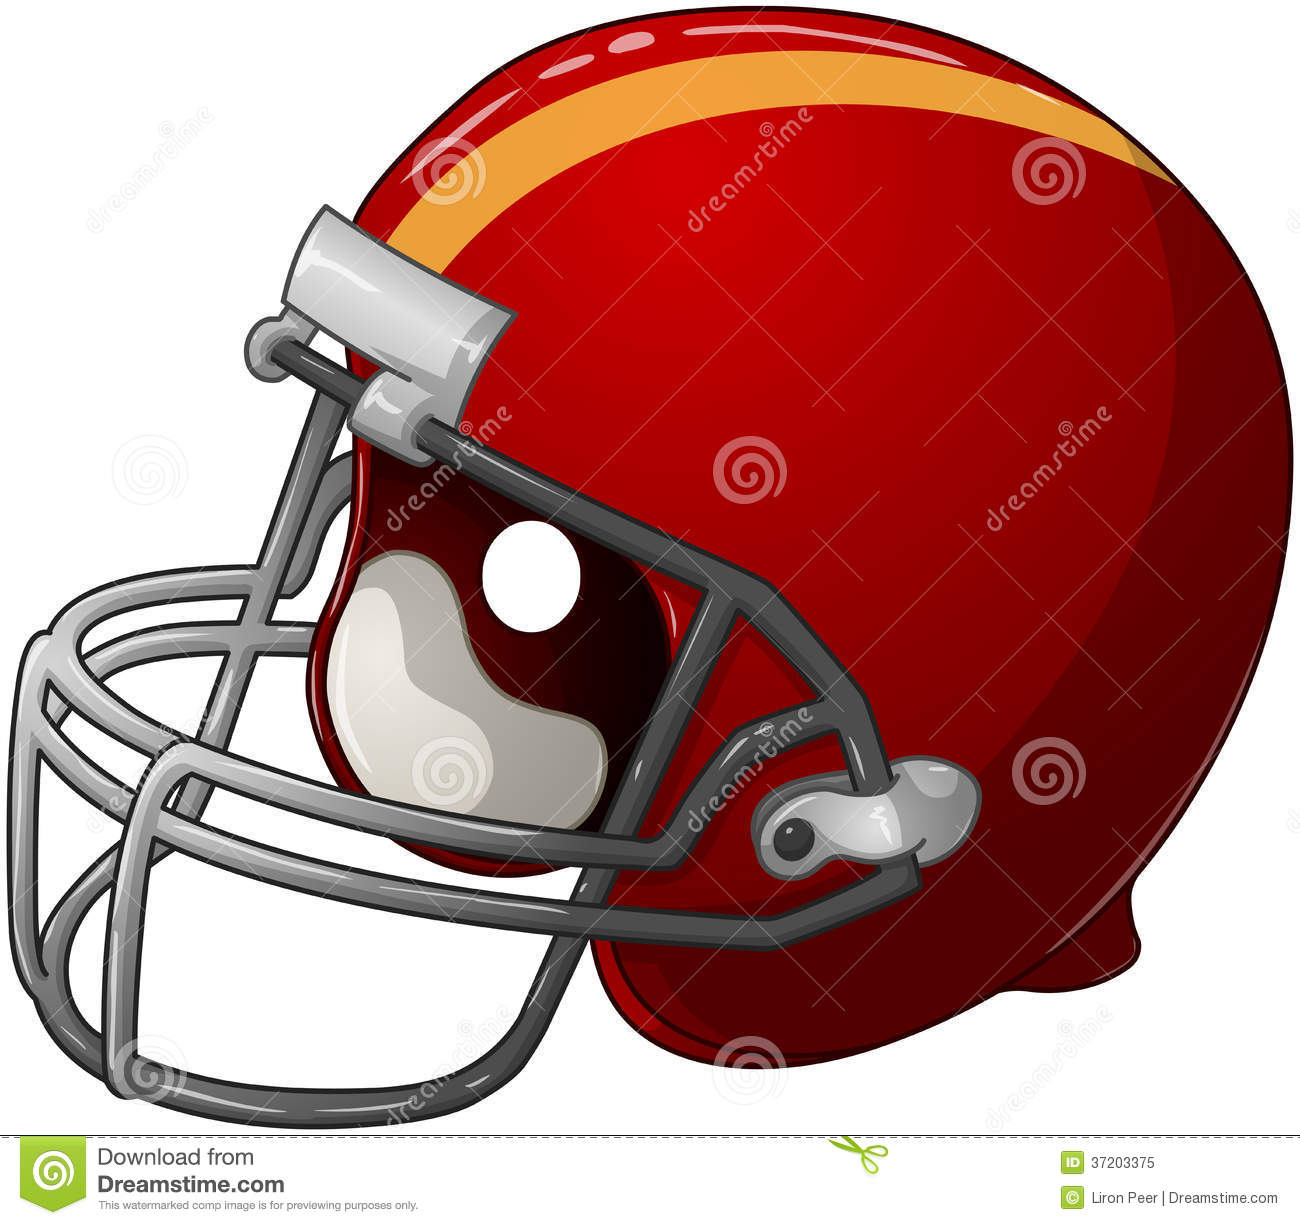 Red Football Helmet Royalty Free Stock Photo   Image  37203375